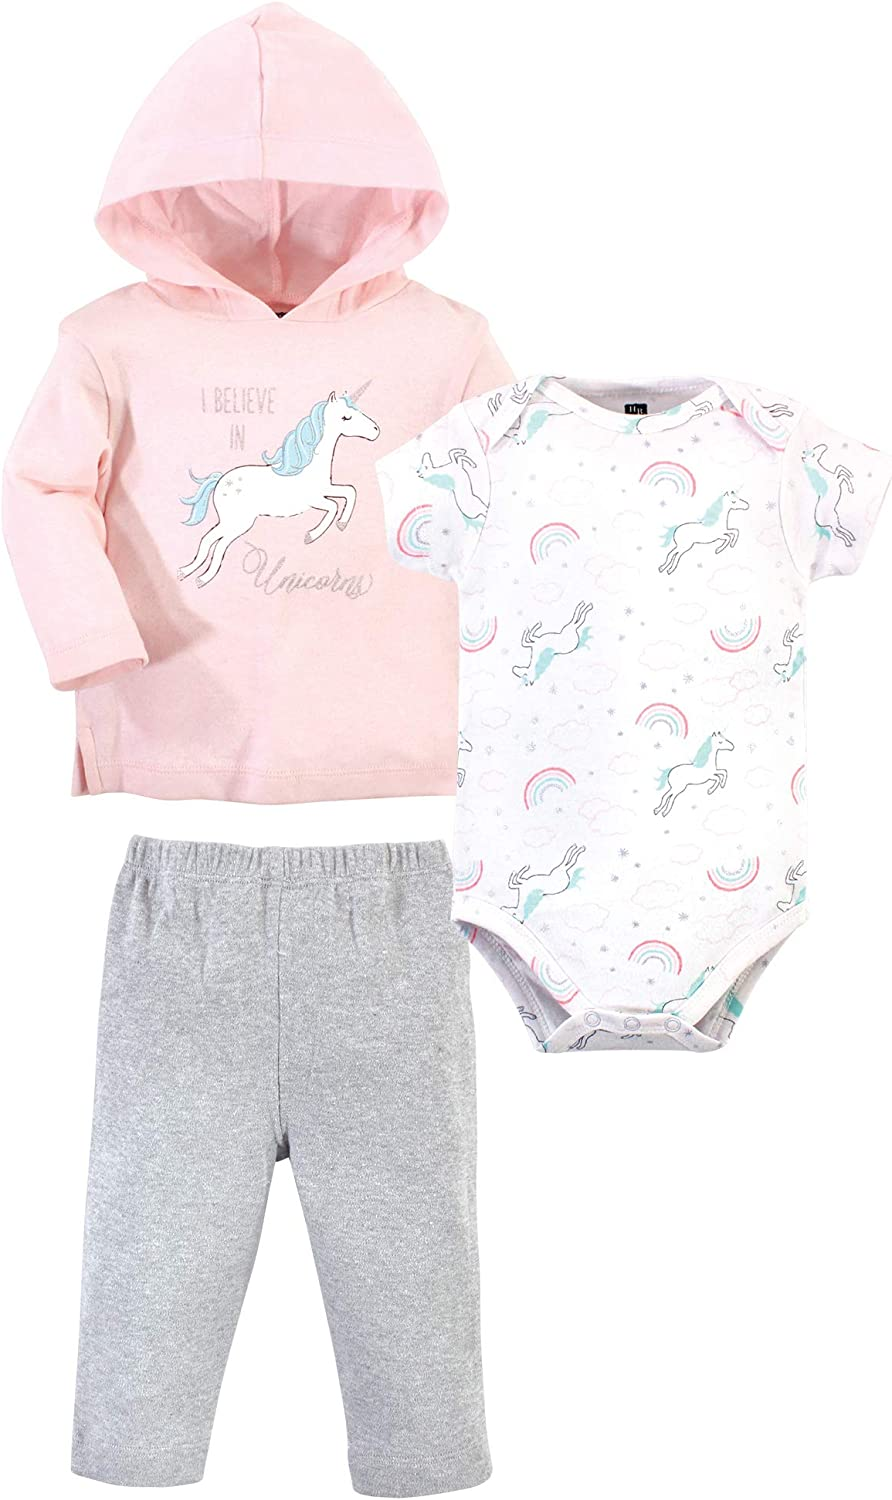 Hudson Baby Baby Girls' Cotton Hoodie, Bodysuit Or Tee Top and Pant Set